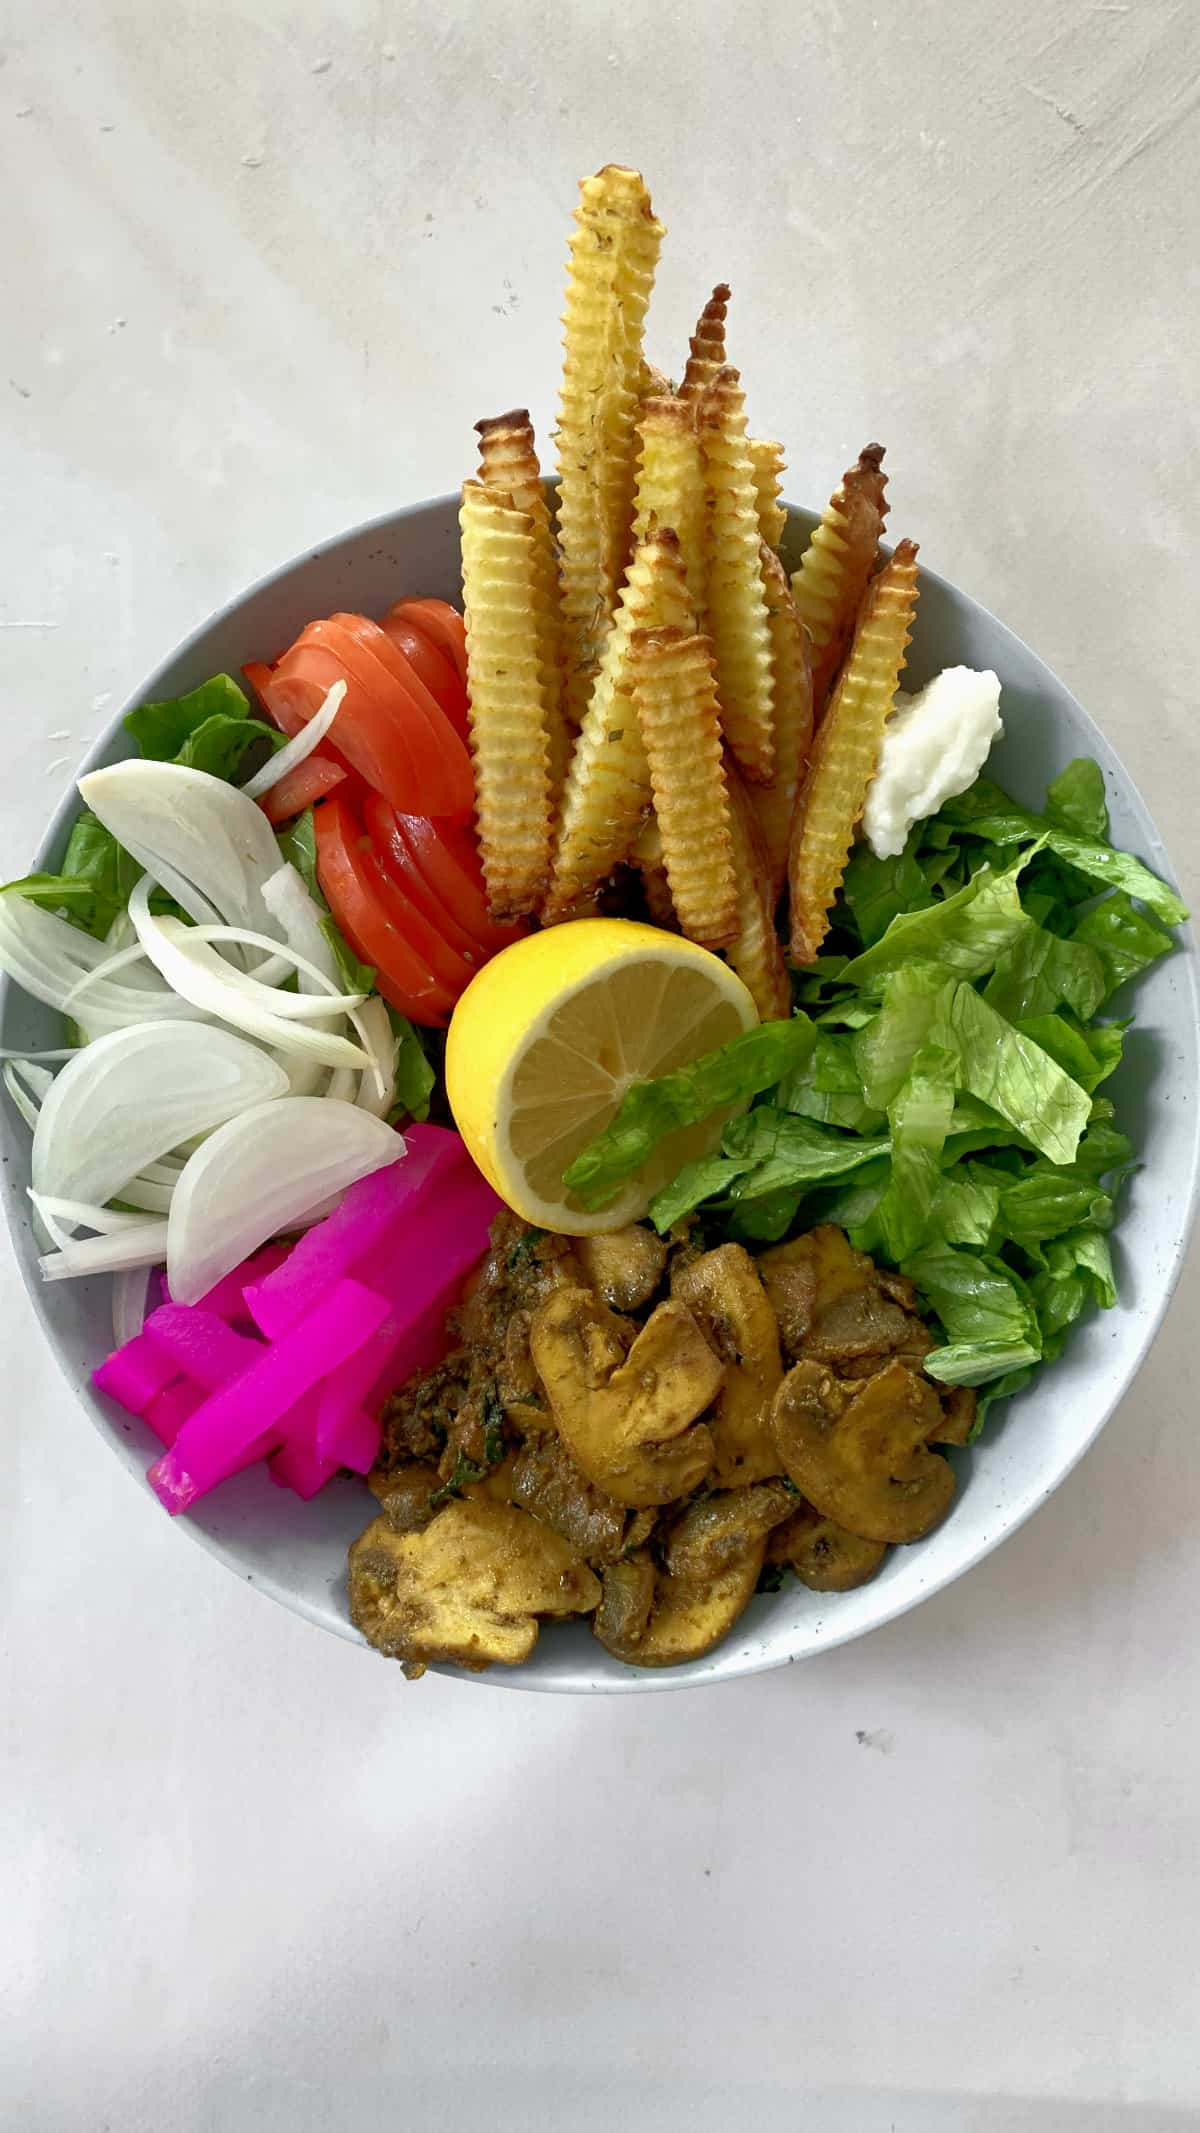 Vegan Shawarma in a plate